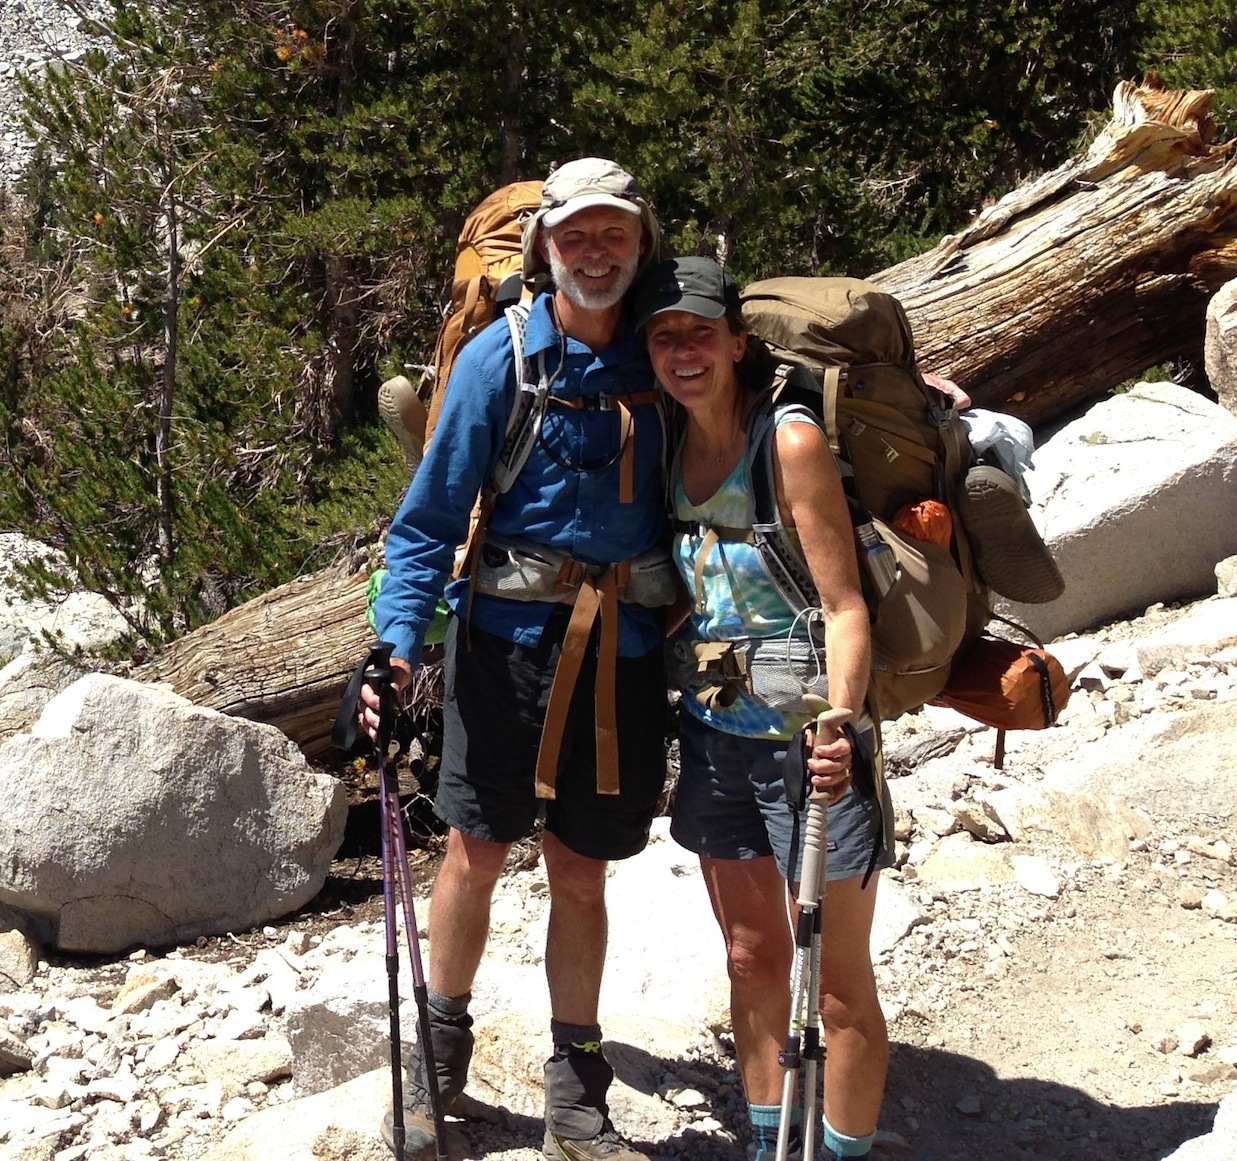 Oregon JMT hikers Craig and Noni are loving the trail after a few days at the Base Camp